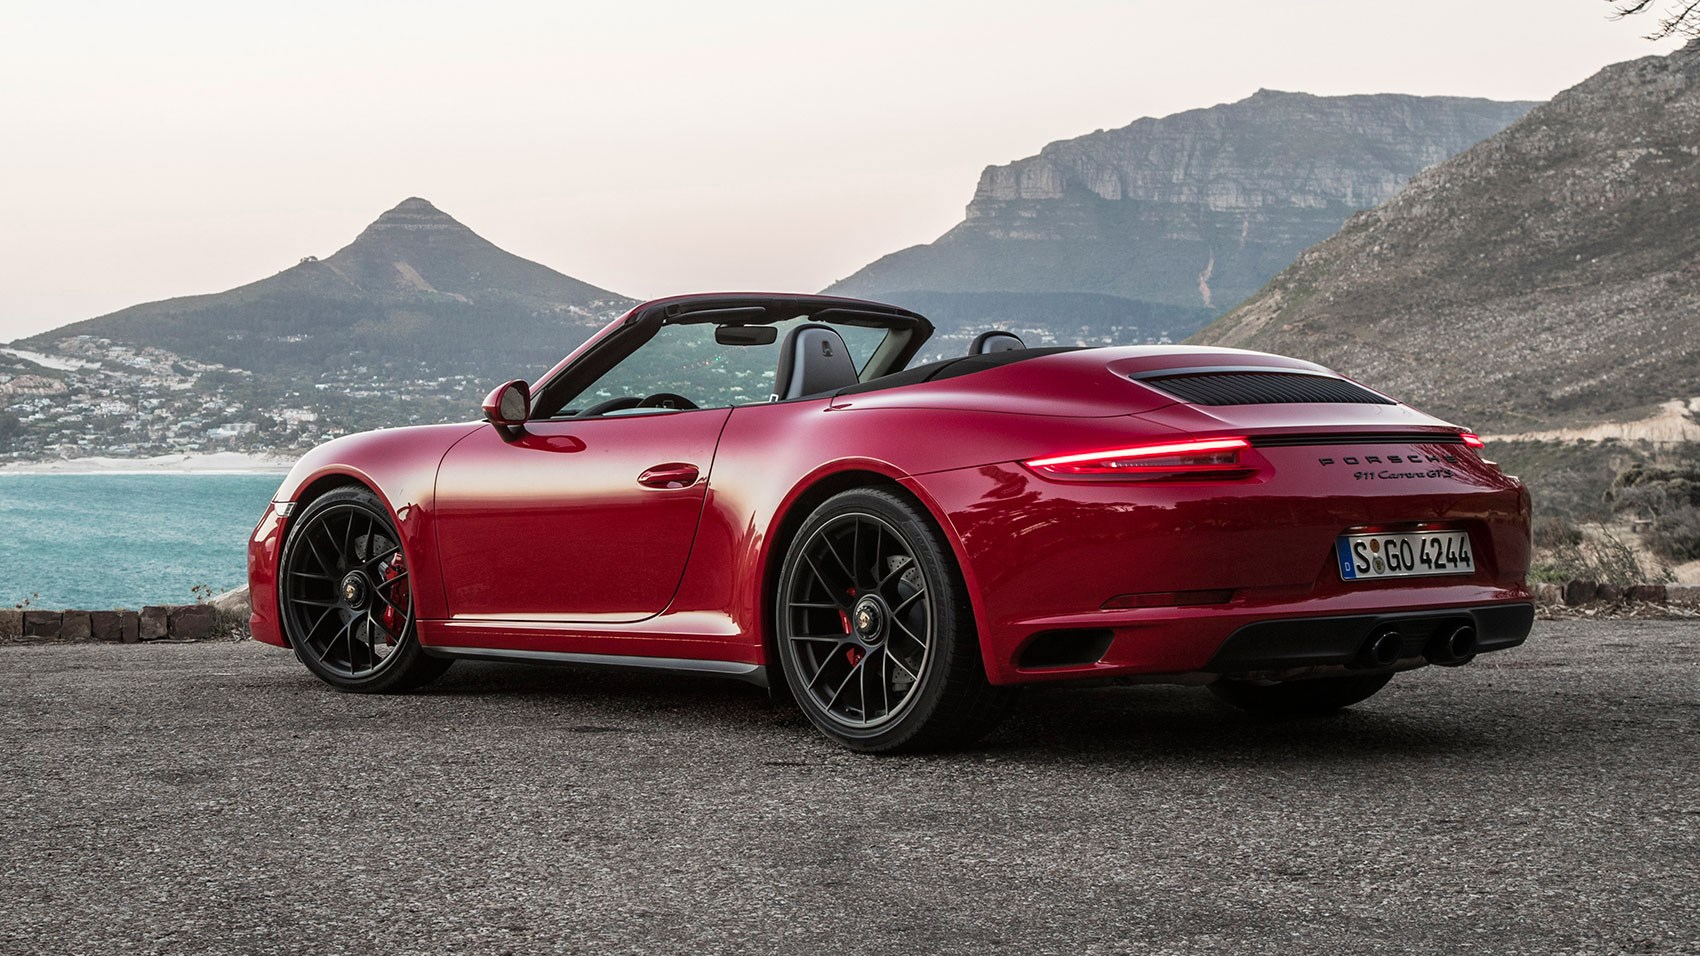 Porsche 911 Carrera Gts Cabriolet 2017 Review Car Magazine